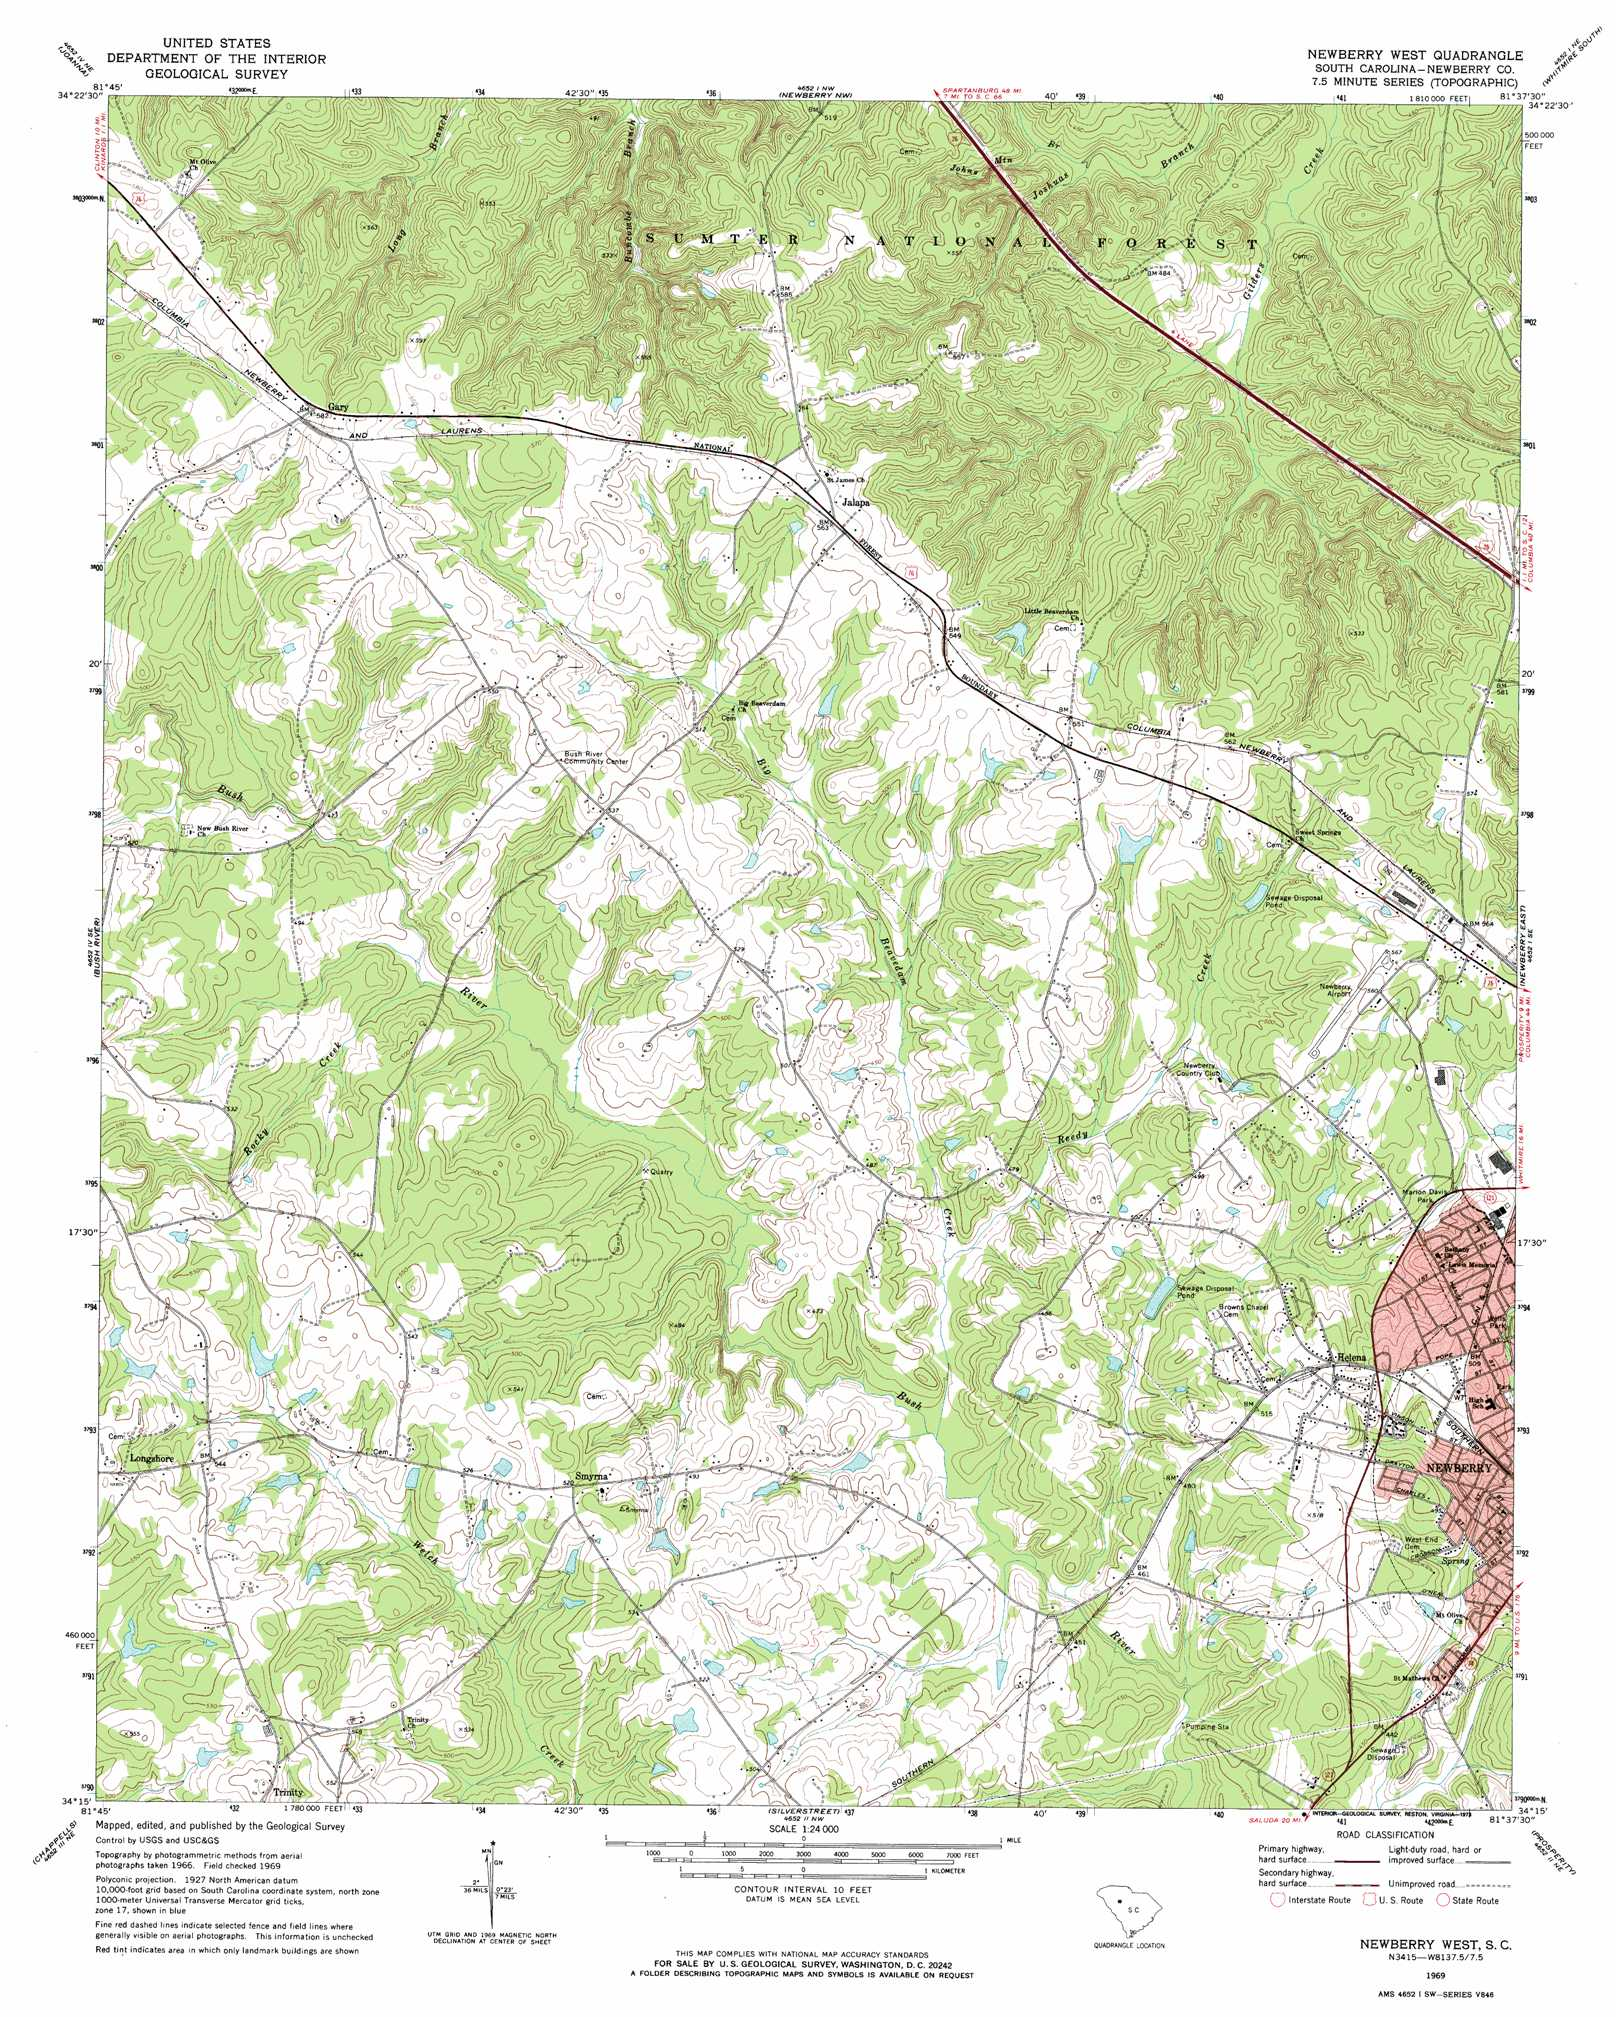 Newberry West topographic map, SC - USGS Topo Quad 34081c6